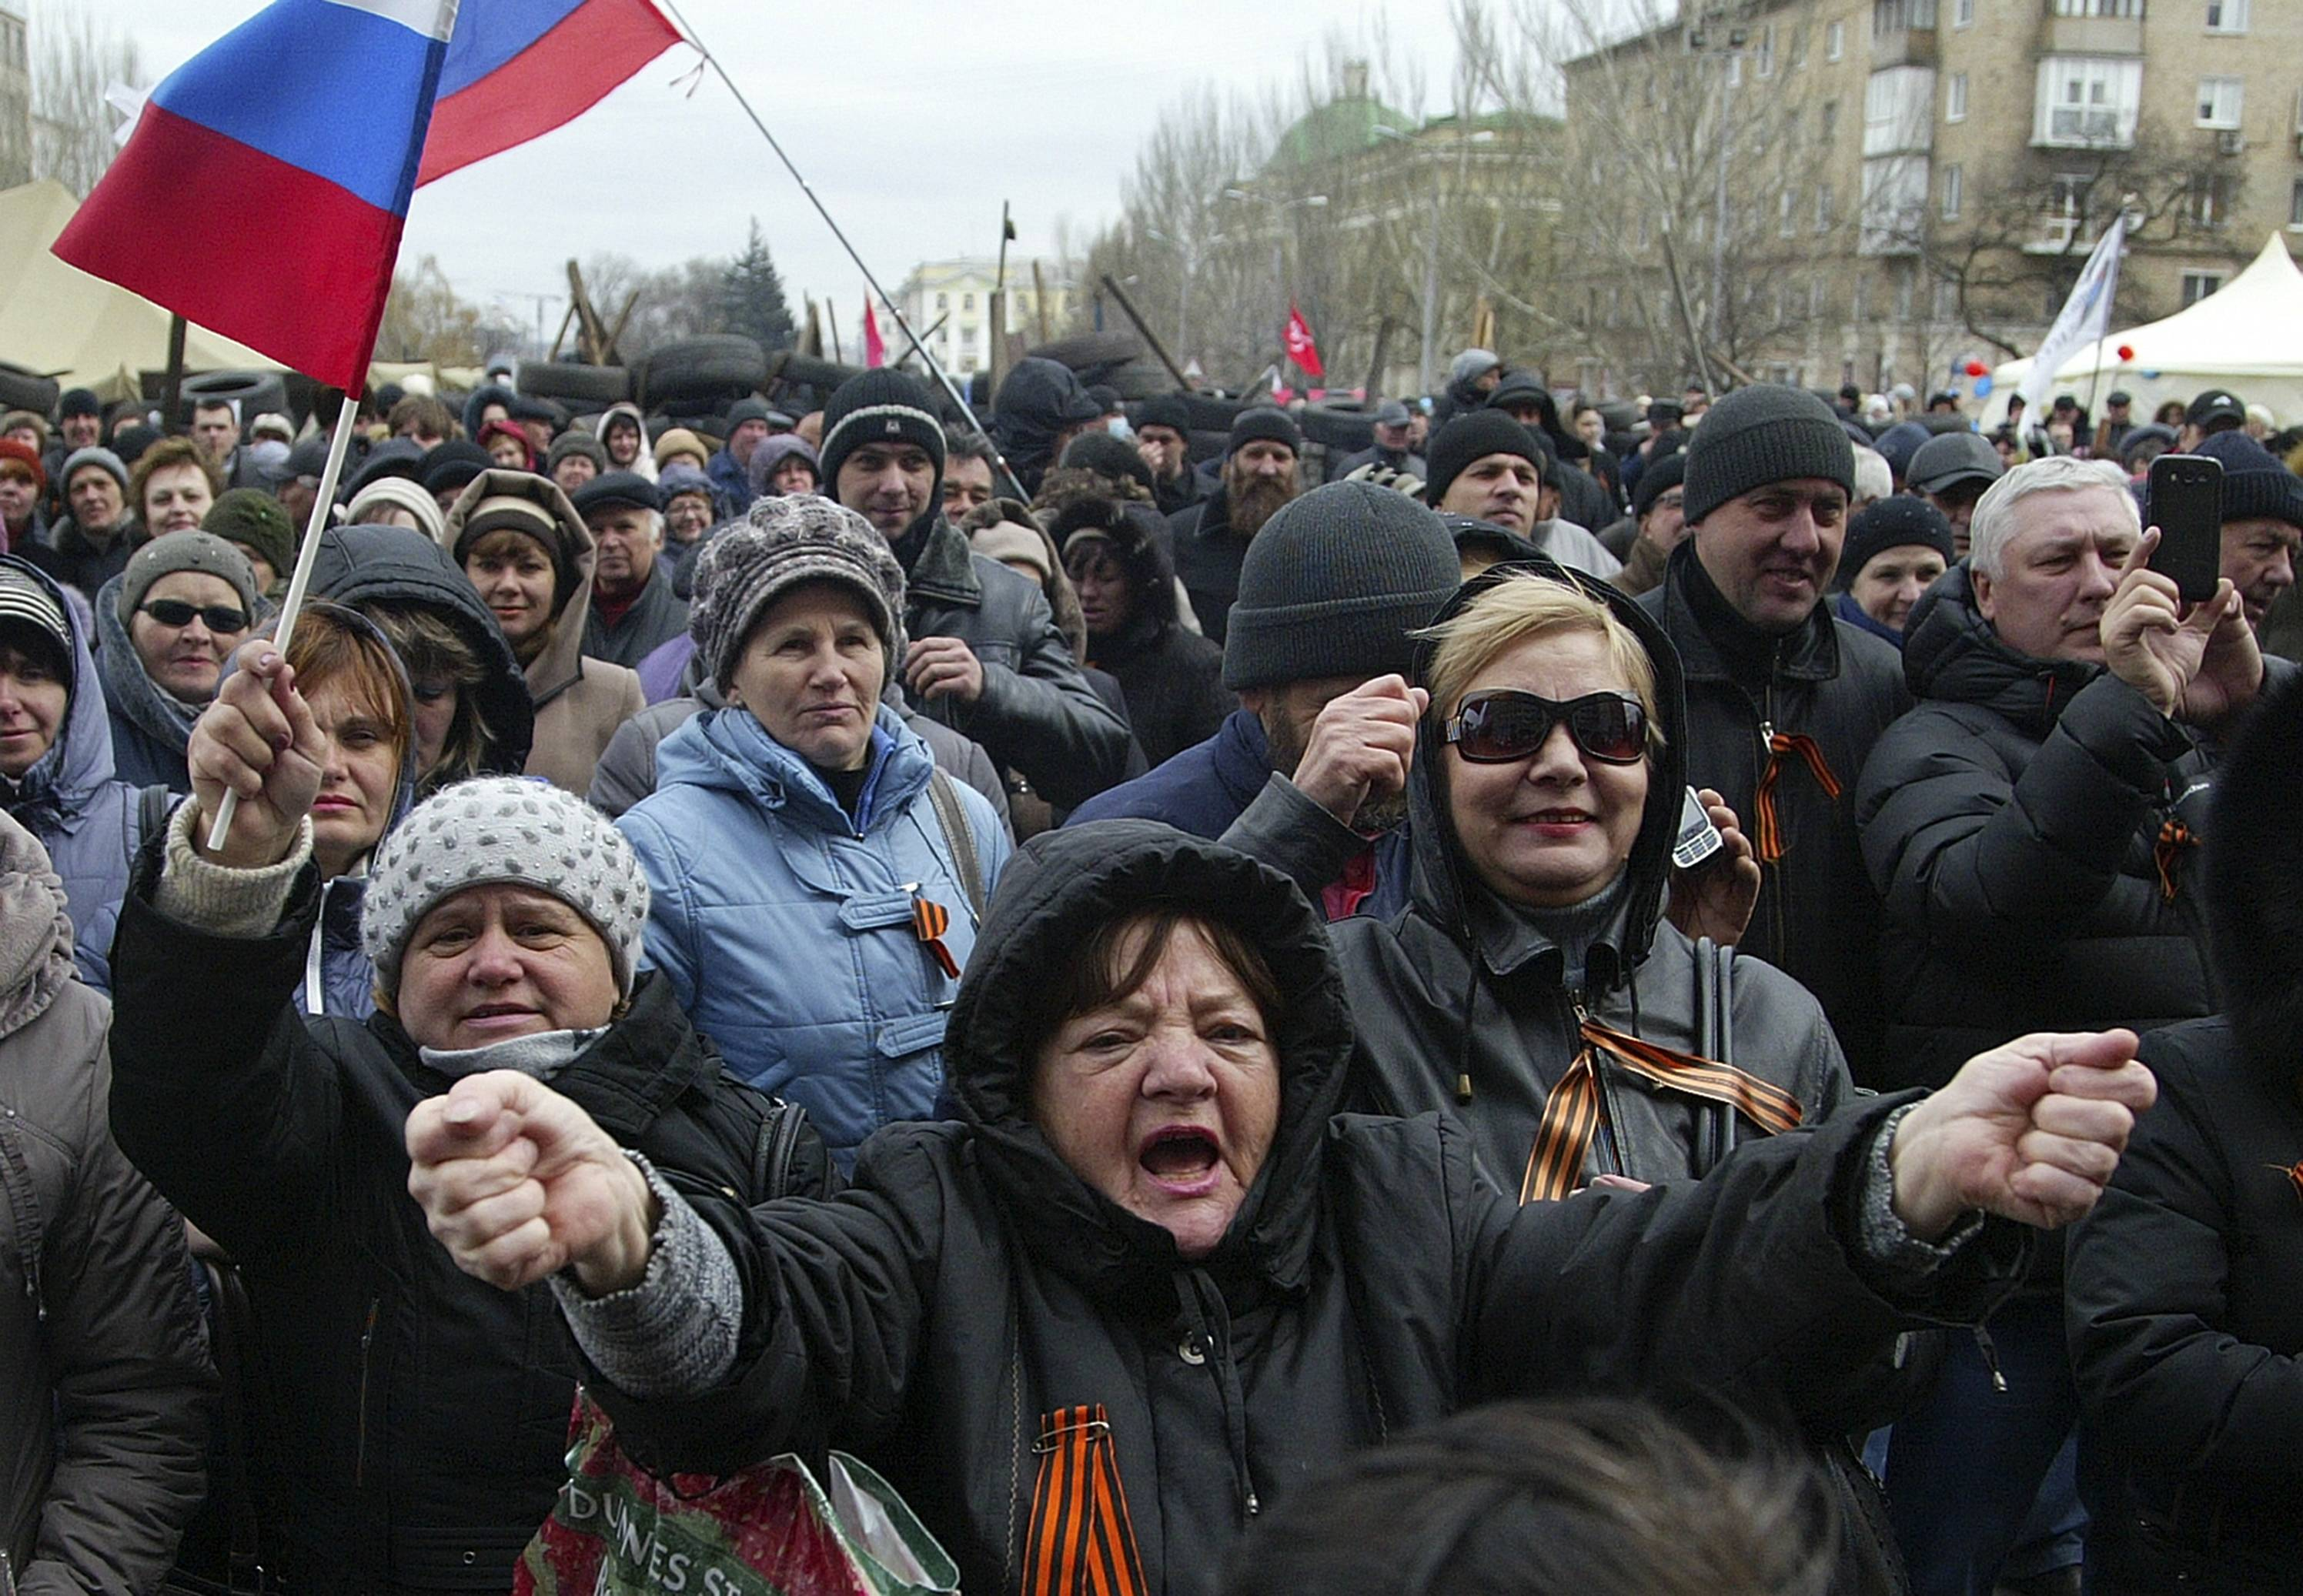 Pro-Russian protesters holding Russian flags gather at the regional administration building in Donetsk, Ukraine, Saturday, April 12, 2014. Protesters, who have held the administration building in Donetsk since Sunday, initially called for a referendum on secession but later reduced the demand to a vote on autonomy within Ukraine with the possibility of holding another later on whether to join Russia.